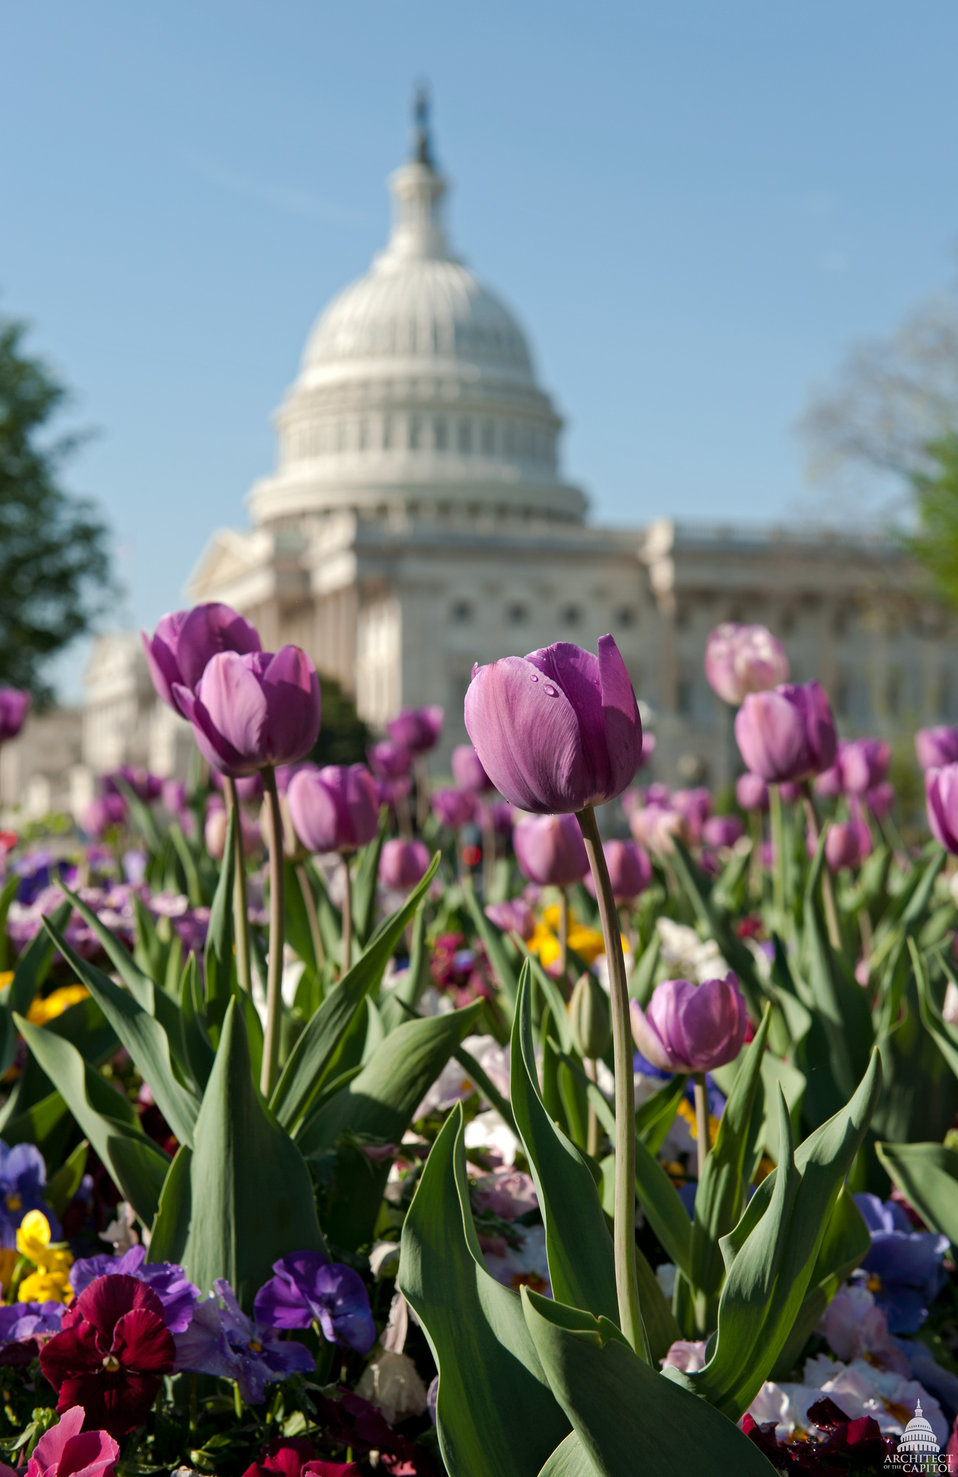 Tulips in Bloom on the U.S. Capitol Grounds